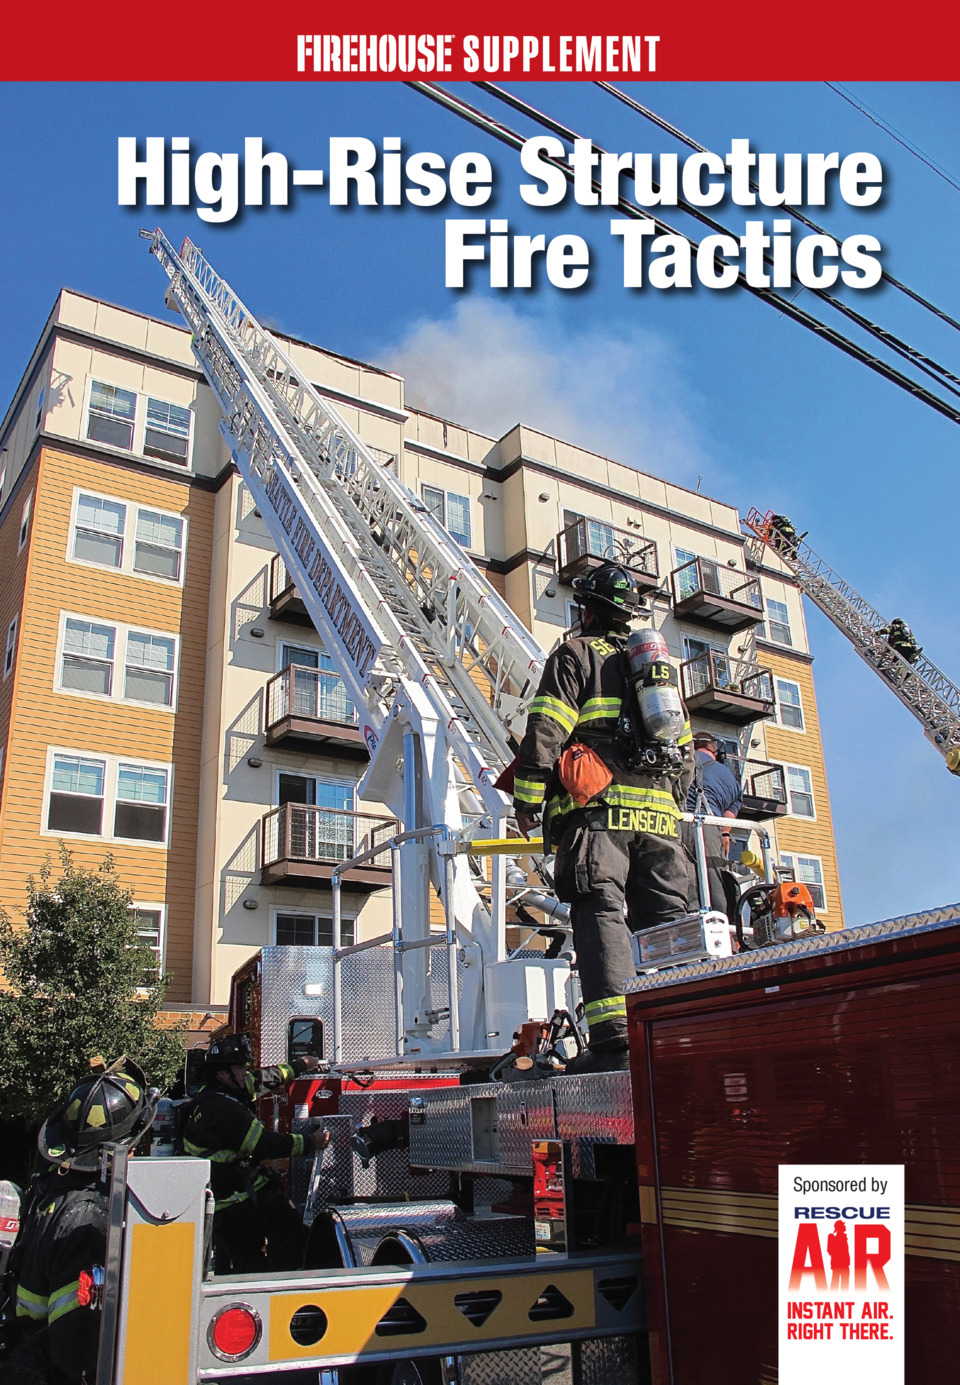 High Rise Structure Fire Tactics Firehouse Supplement